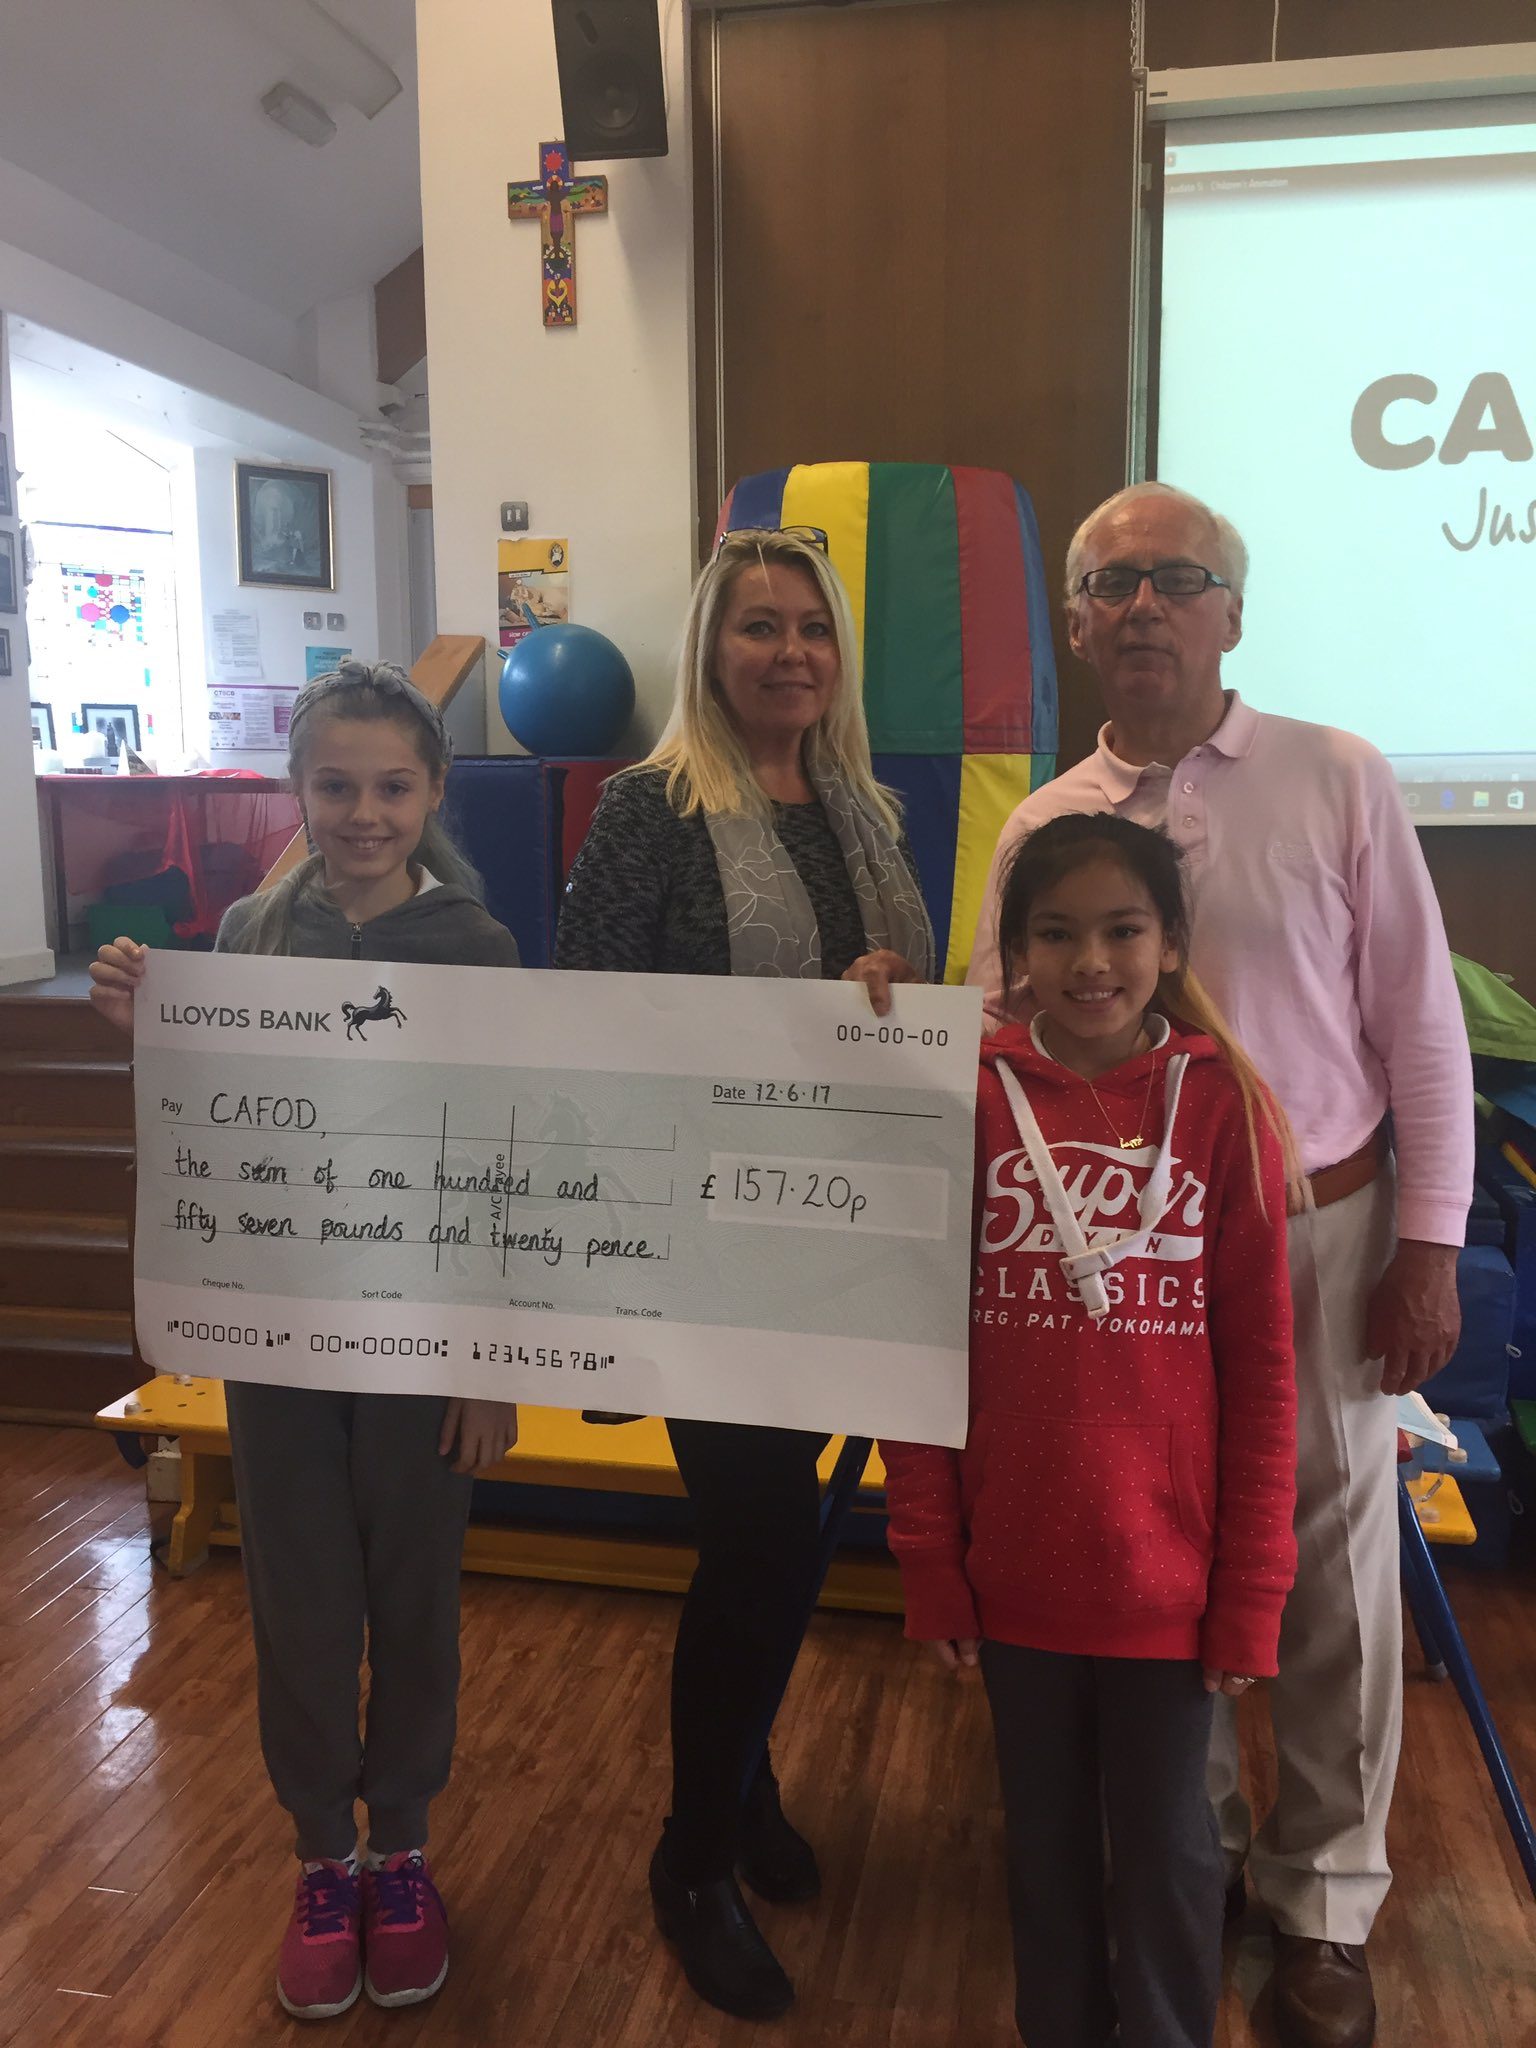 We donated our Lent Challenge Money today in the CAFOD Assembly. @CAFODSouthWales @CathEdService @CAFODSchools @CNSRCT @CatholicCardiff https://t.co/7hqsUUqI2E